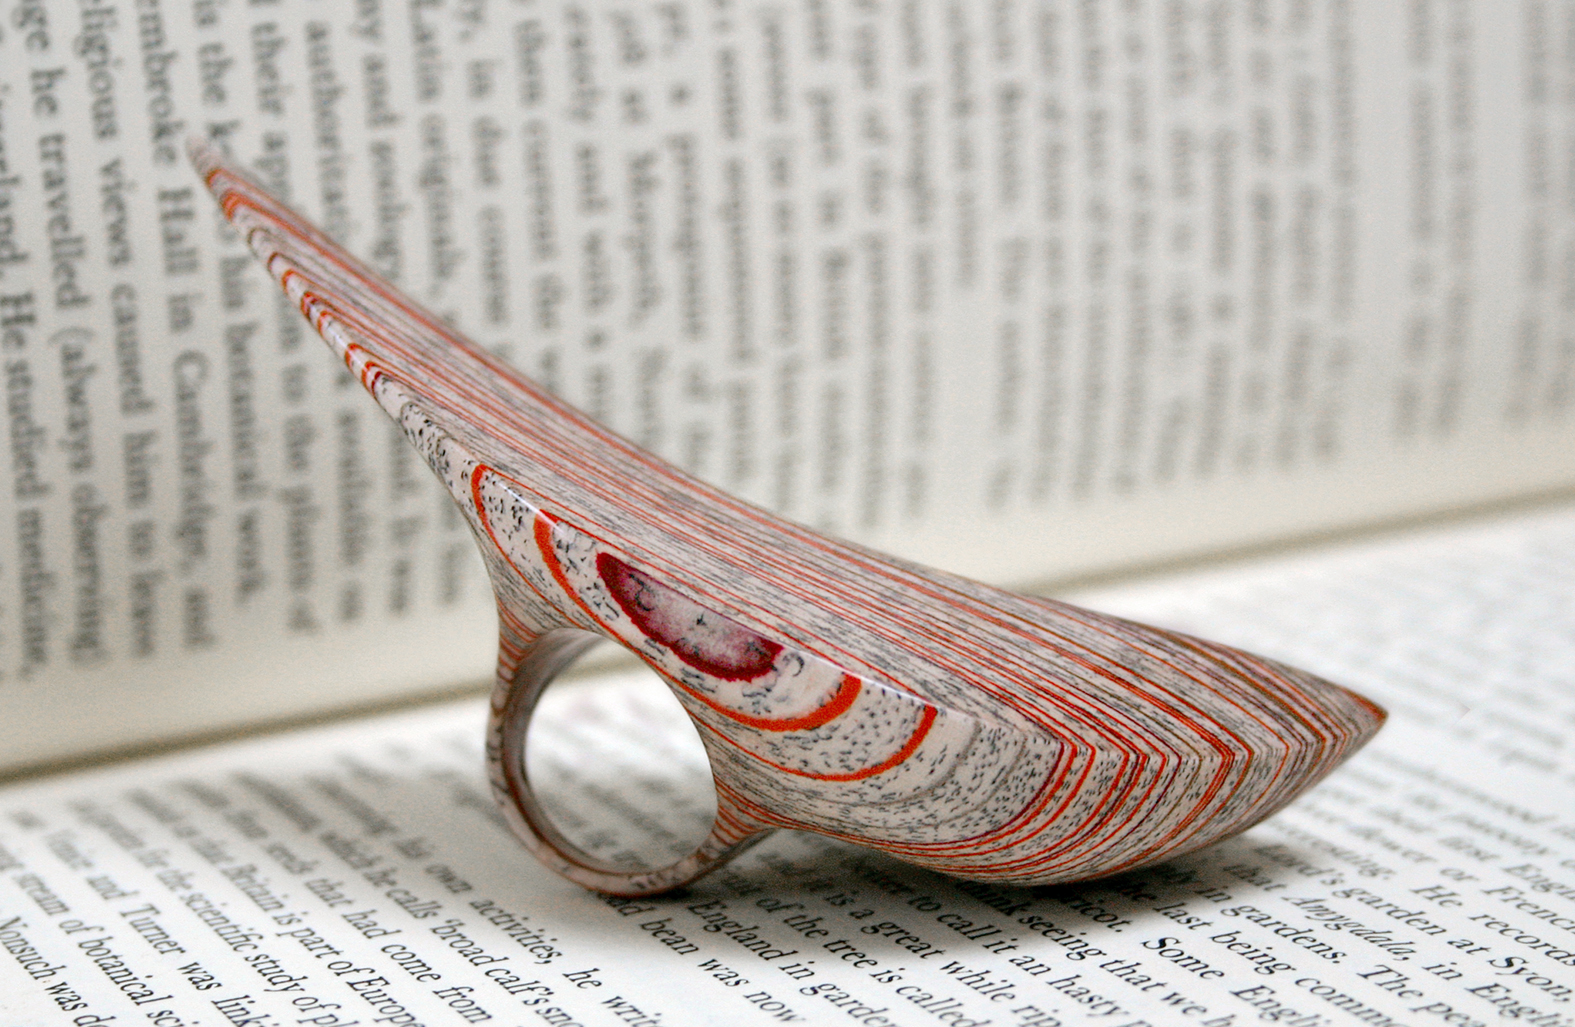 New work from literary jeweler Jeremy May ( previously ) transforms the dense layers of books into j